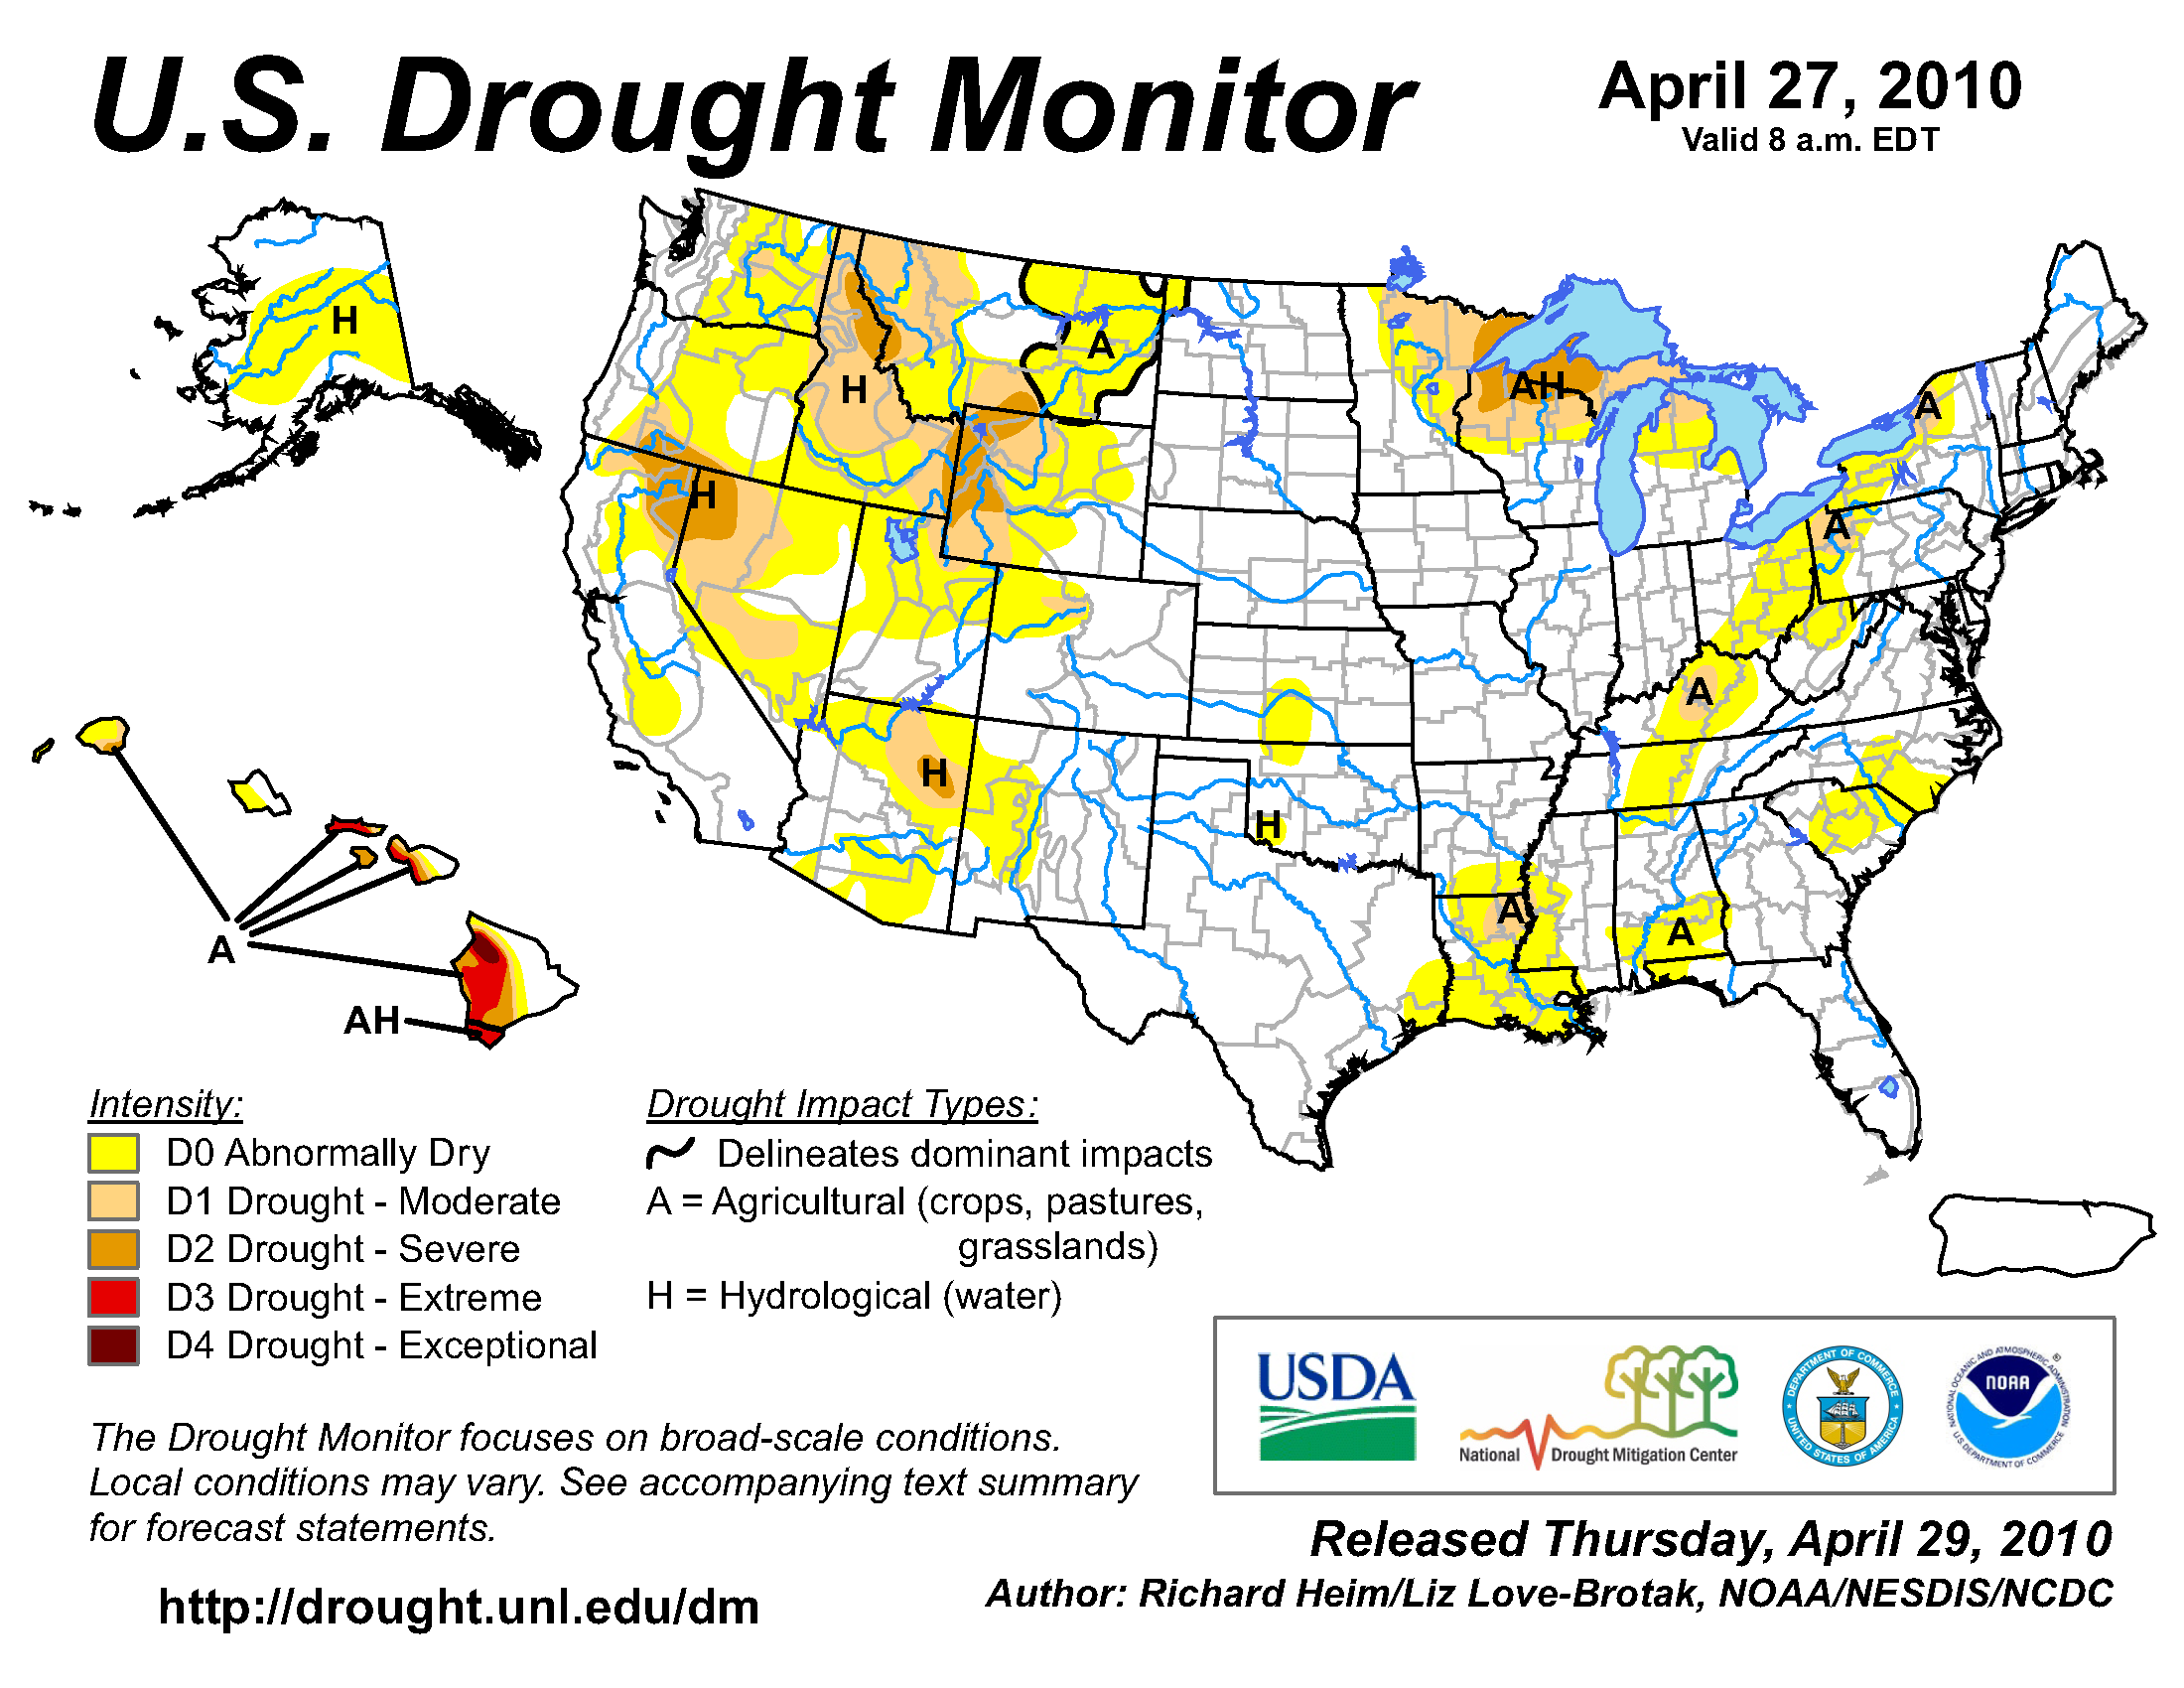 U.S. Drought Monitor map from 27 April 2010